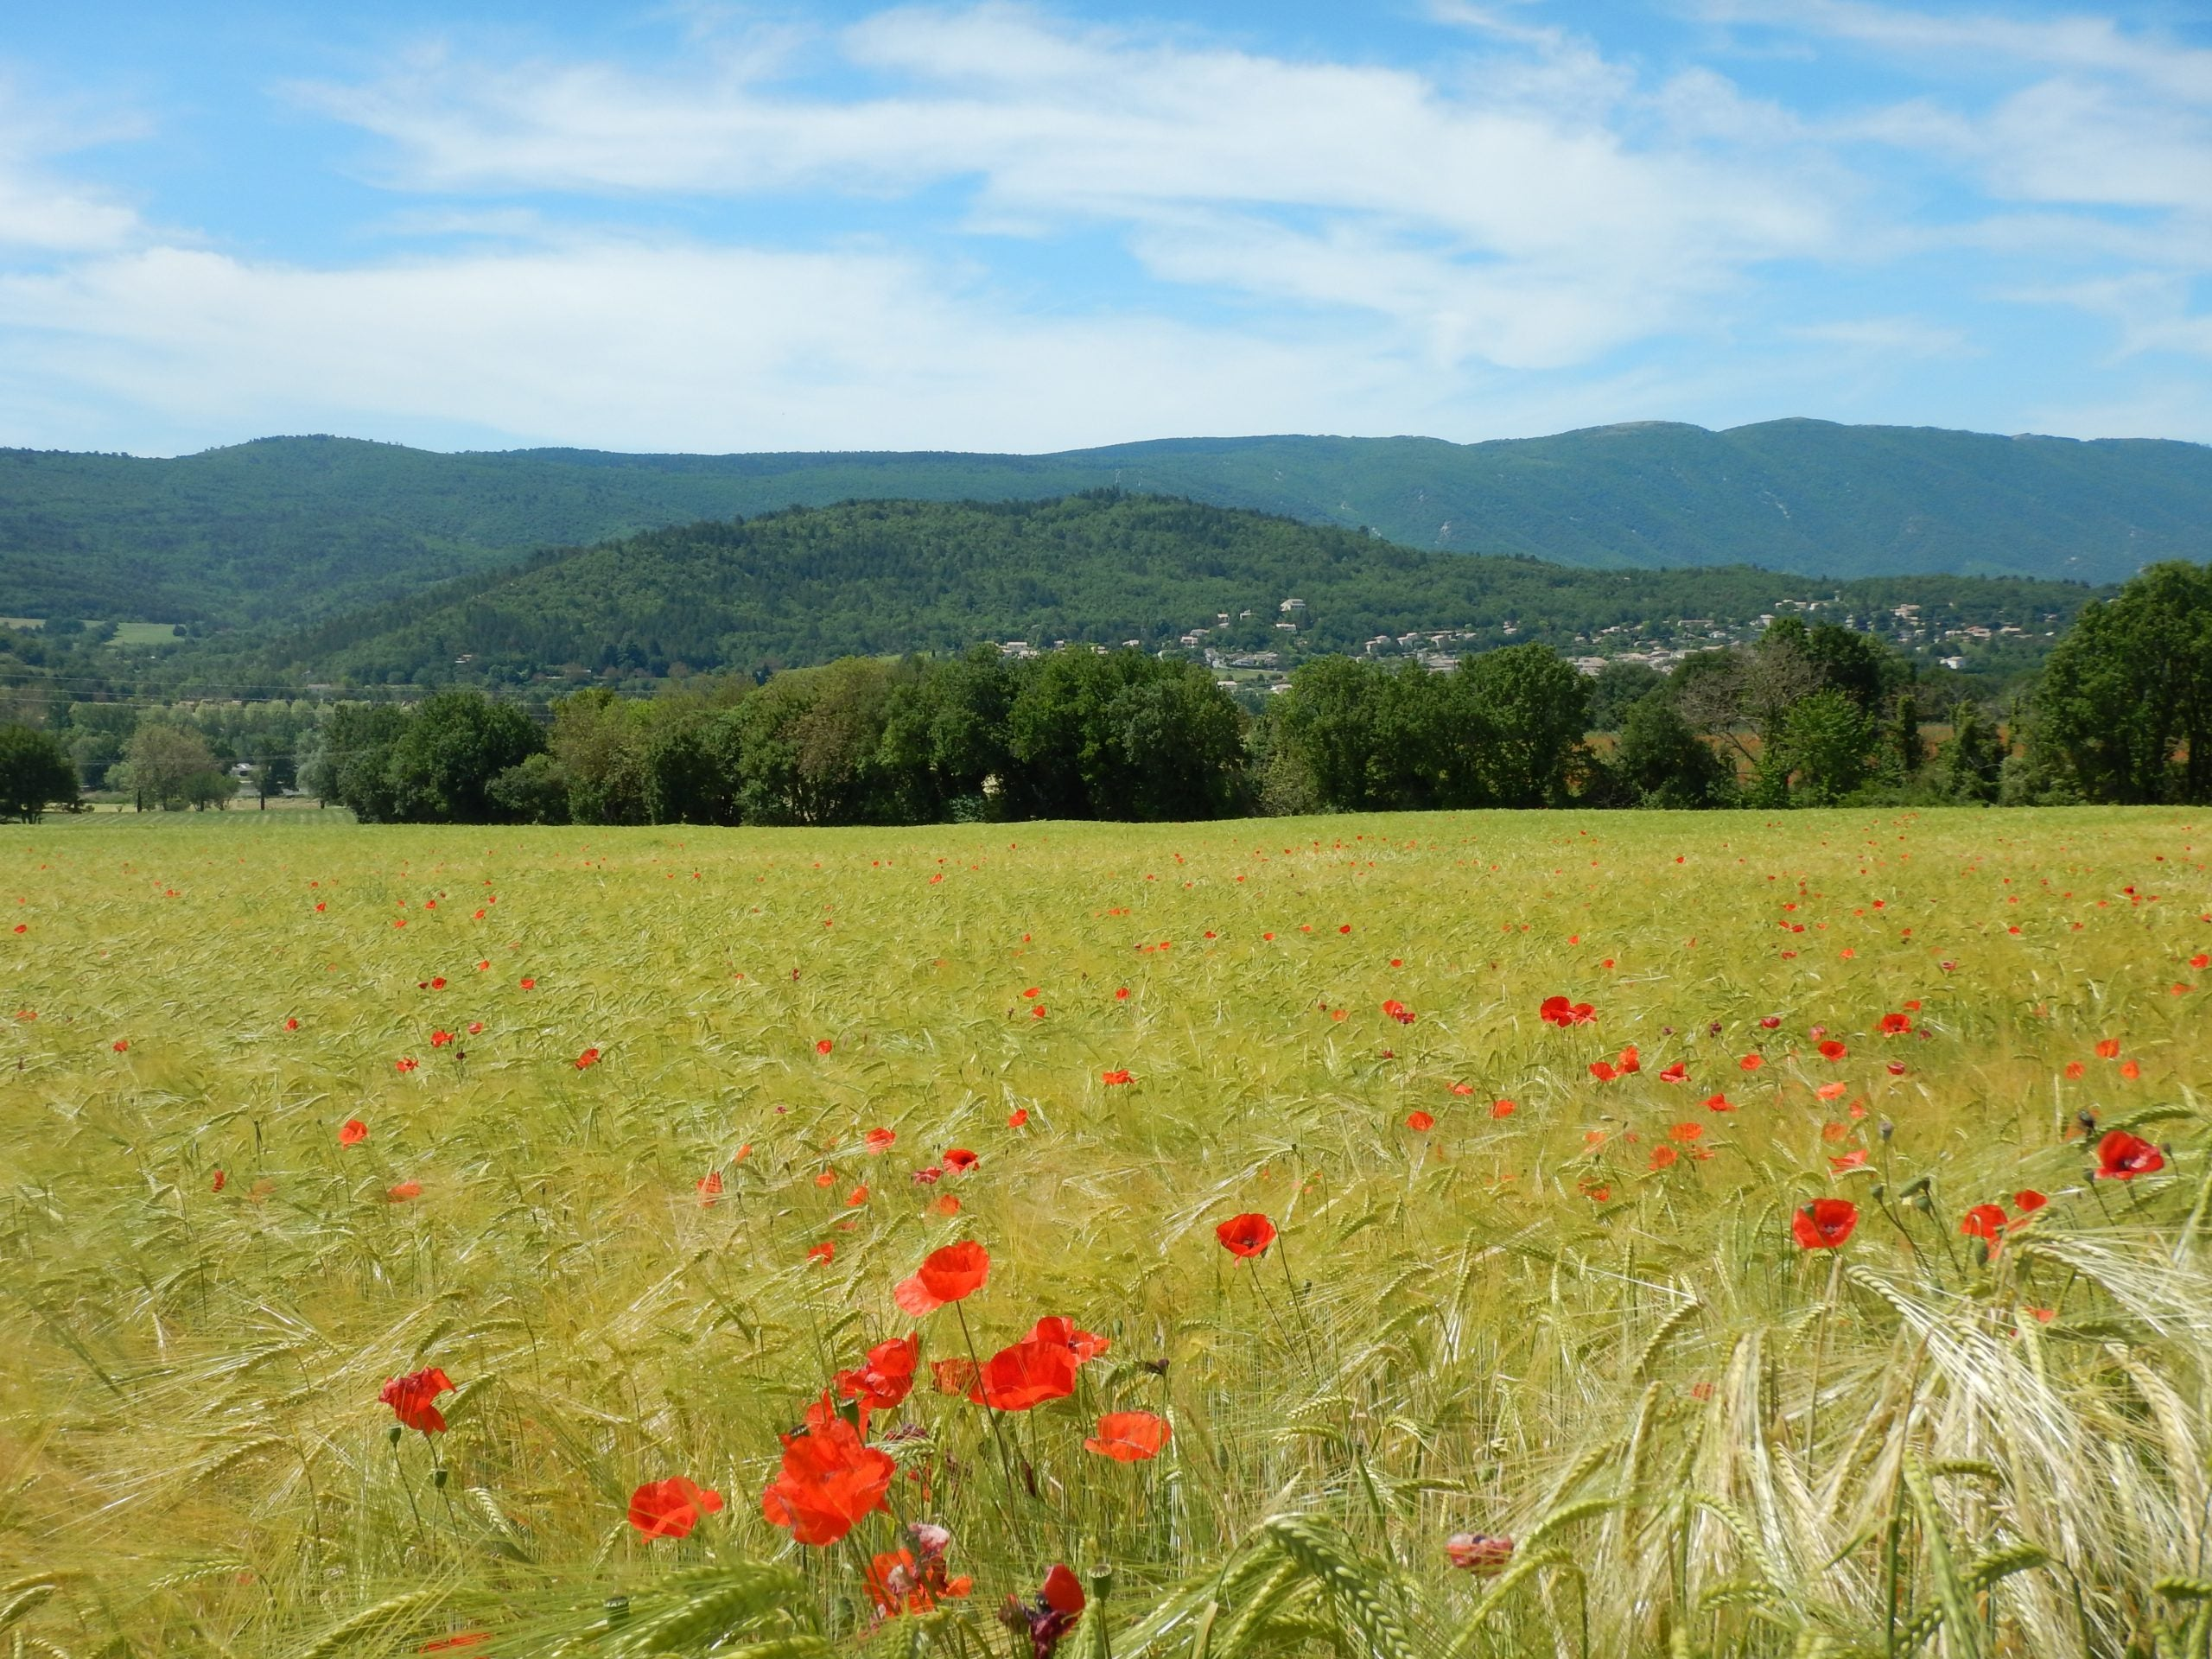 5 Mistakes From My First Self-Supported Bike Tour - Poppy Field in France